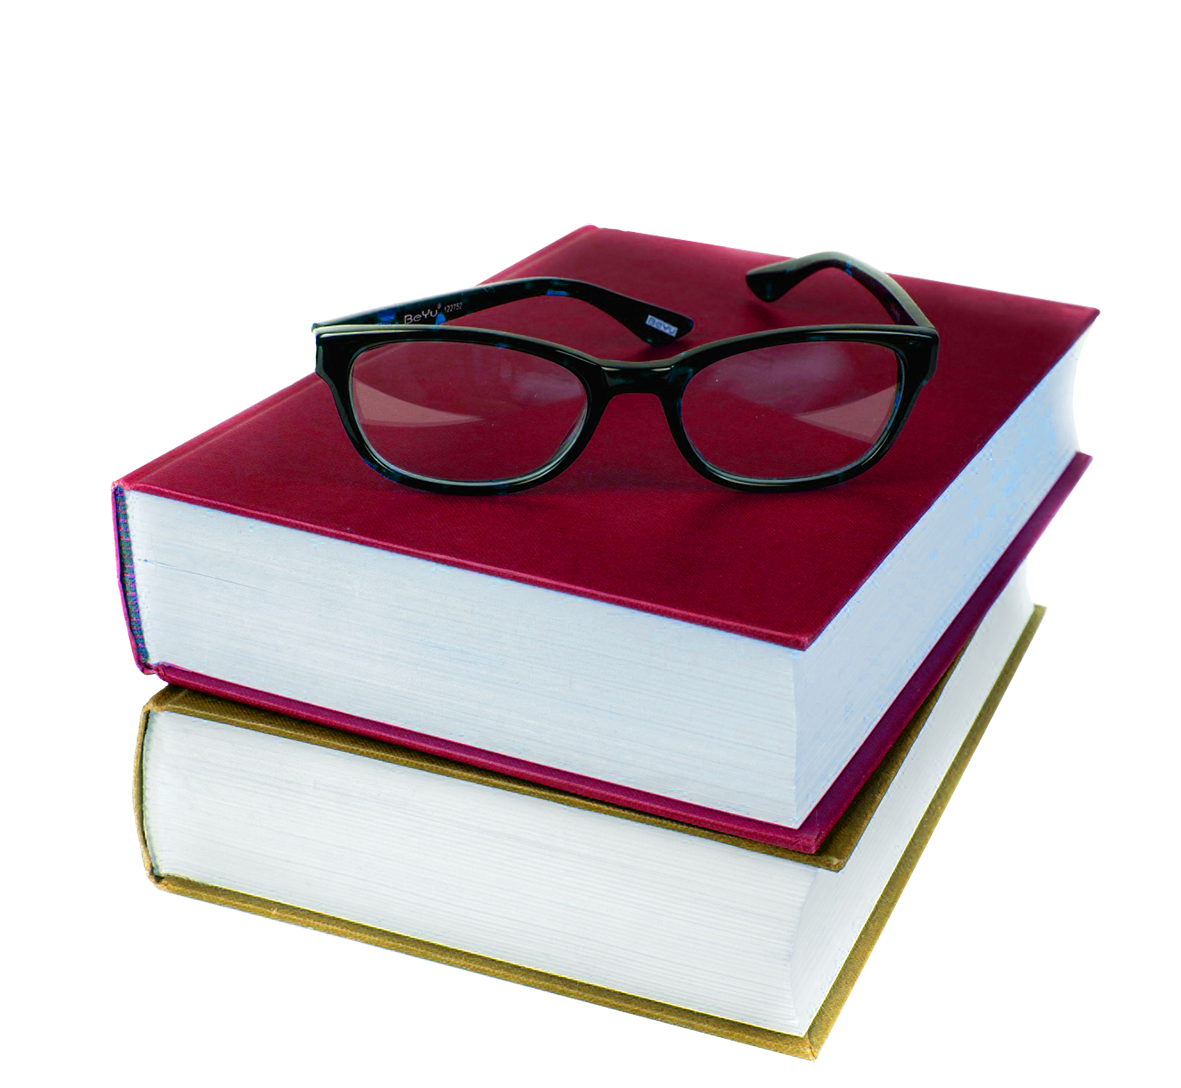 books in red-and green and glasses clipart